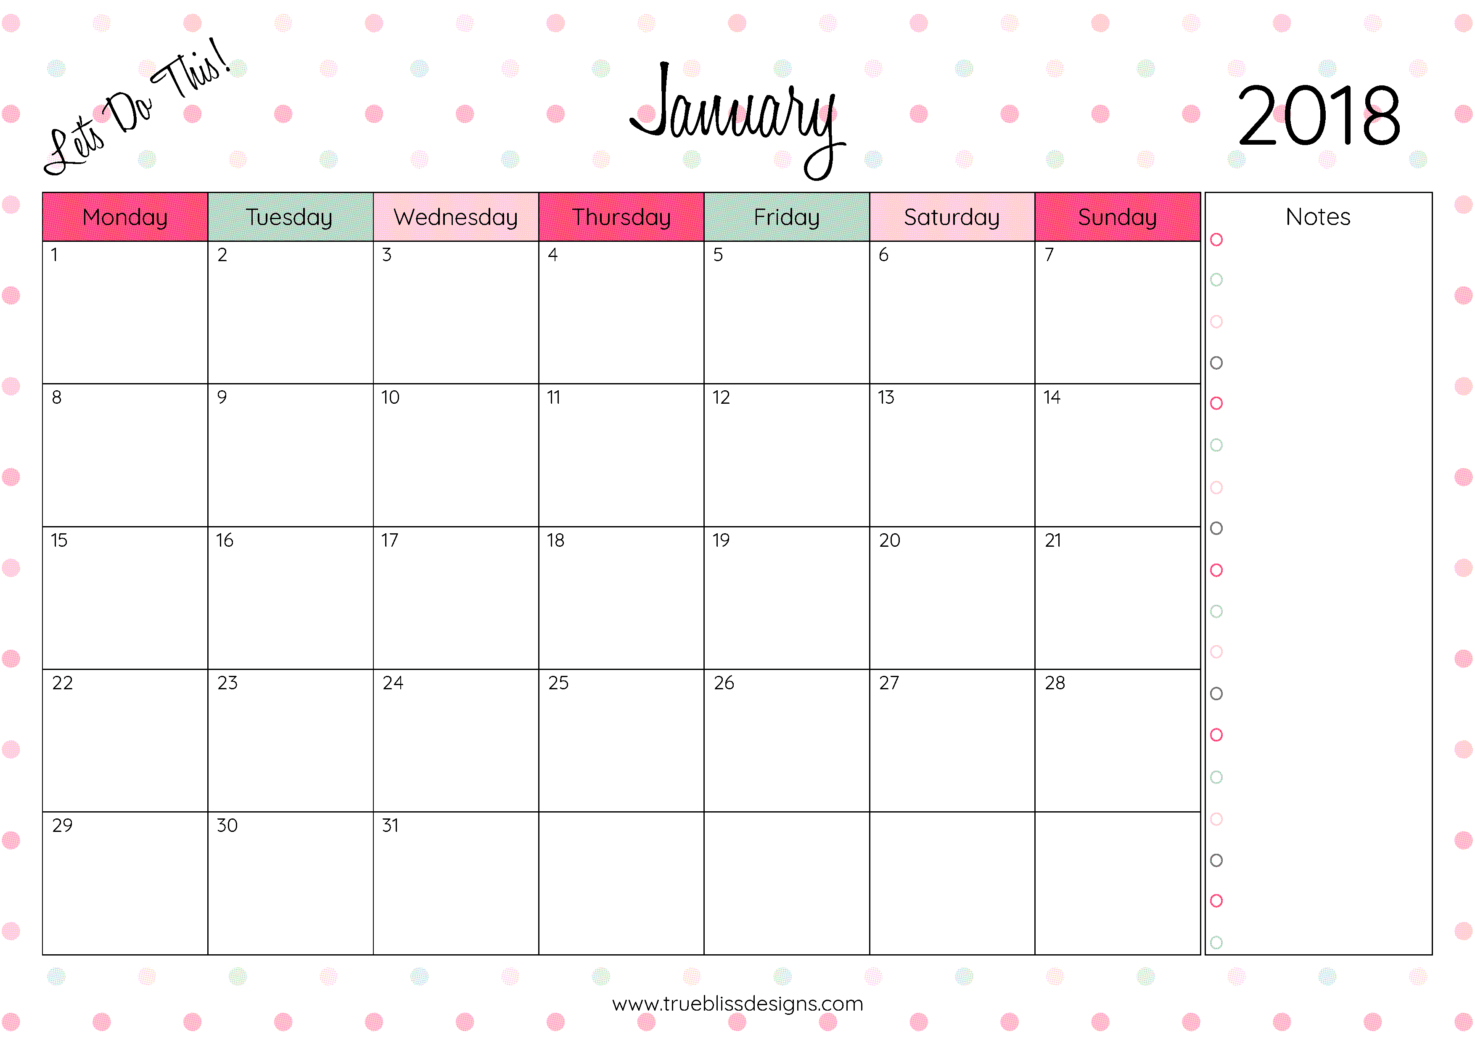 2018 Monthly Printable Calendar - Let's Do This | Diy